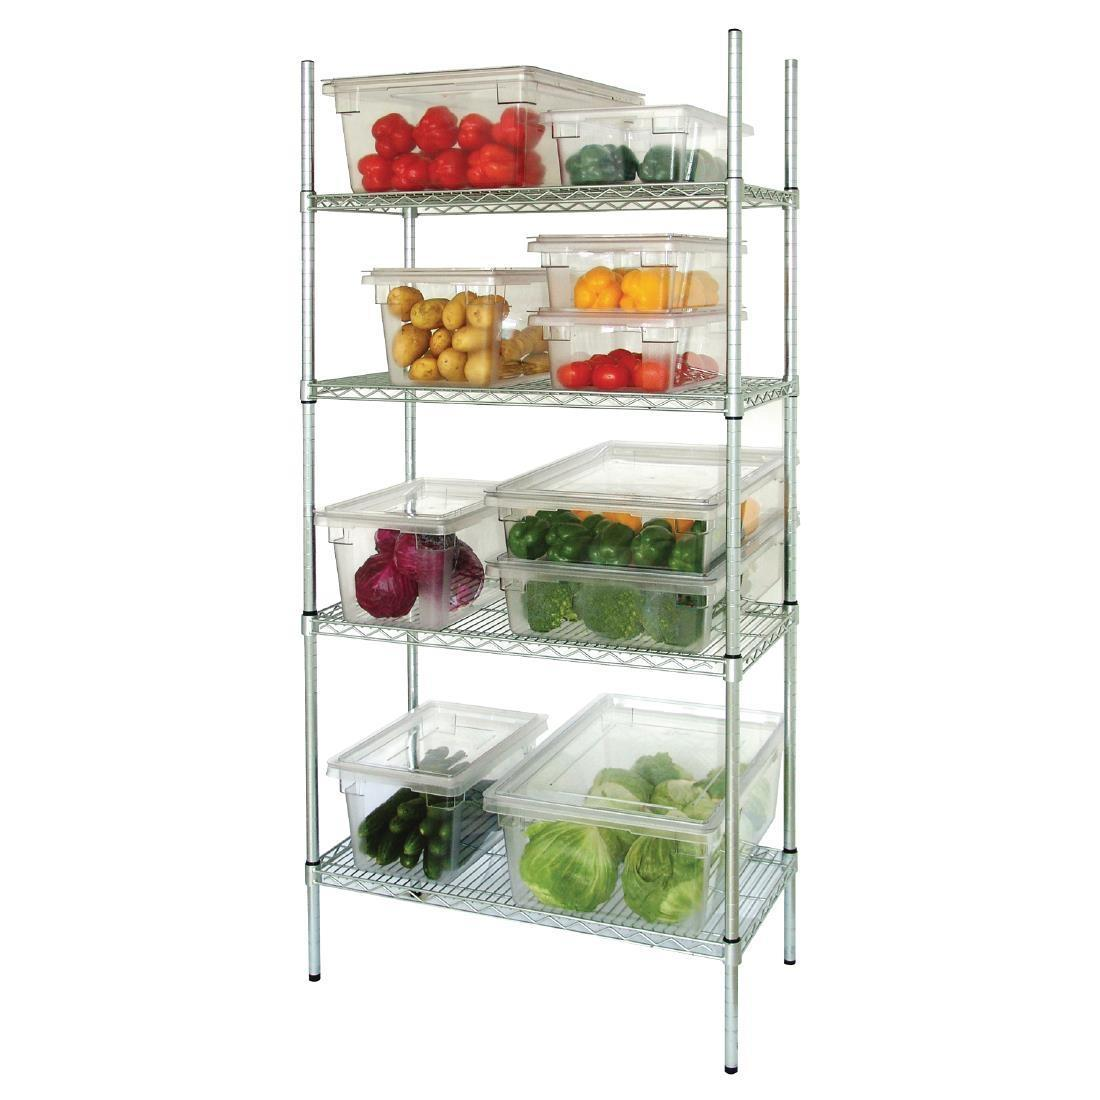 Vogue 4 Tier Wire Shelving Kit 1830x460mm - L939